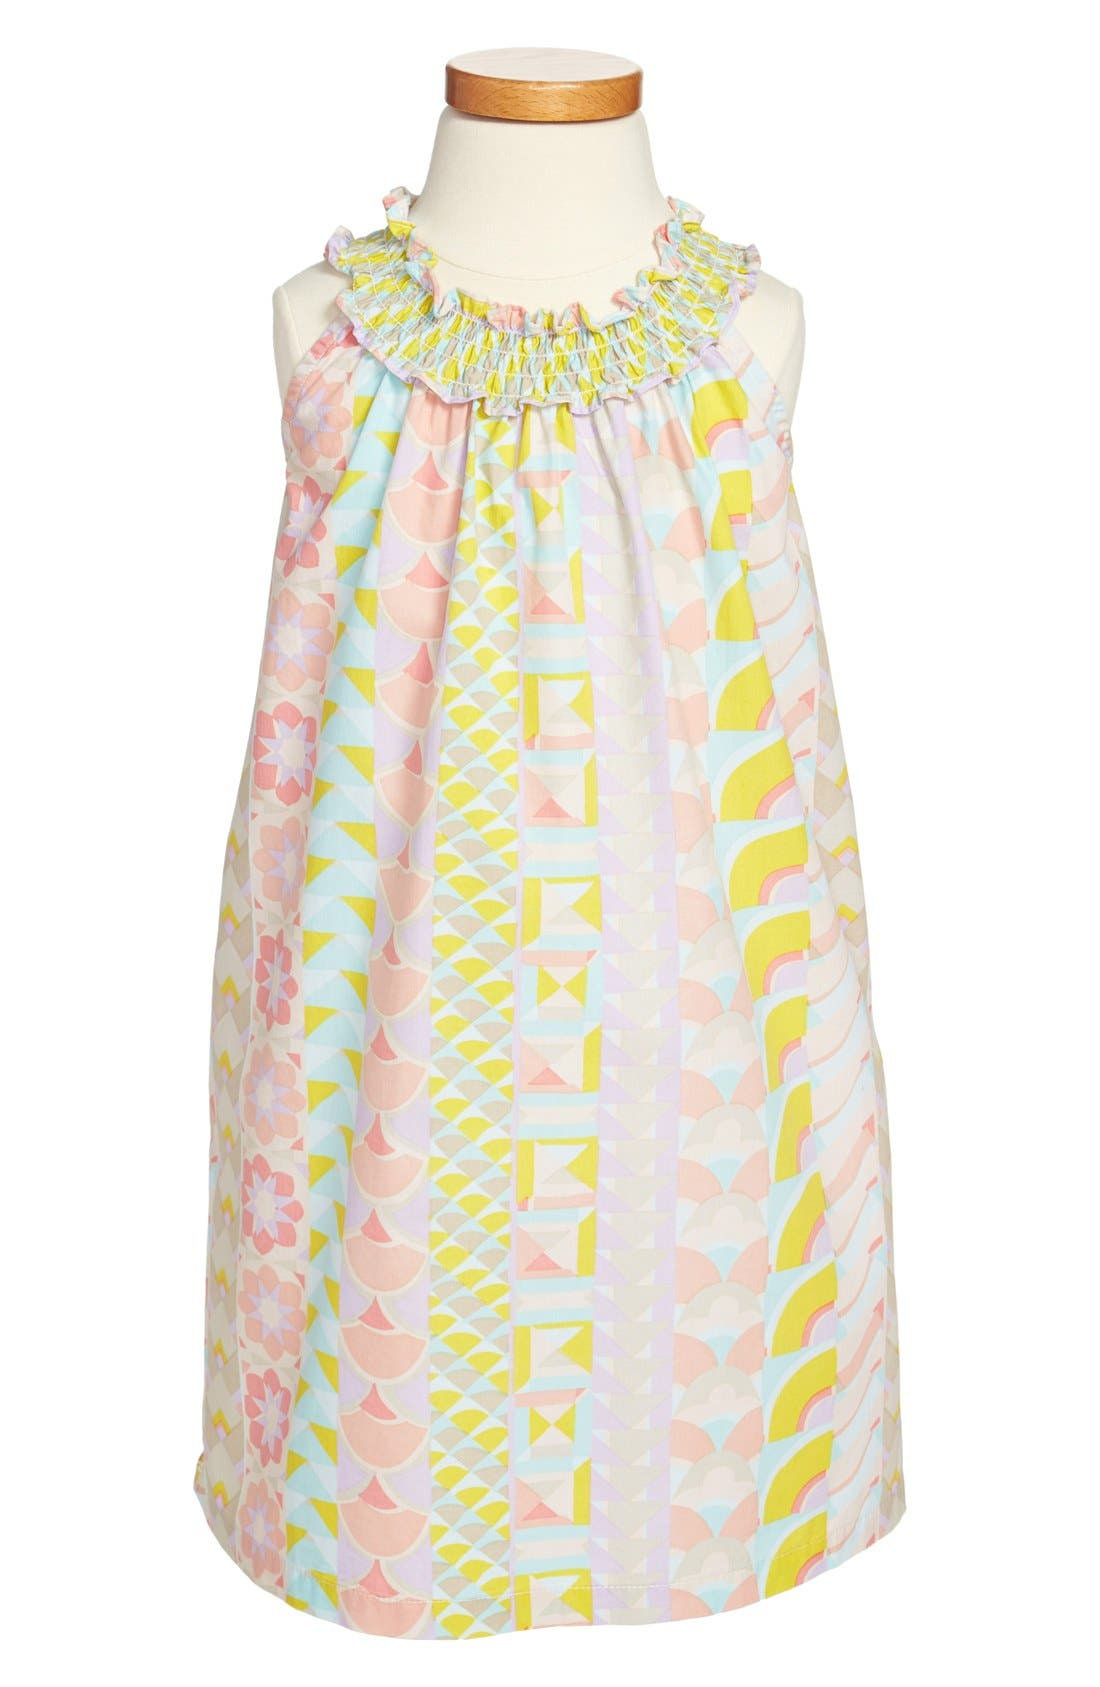 Alternate Image 1 Selected - Tea Collection 'La Mamounia' Halter Dress (Little Girls & Big Girls)